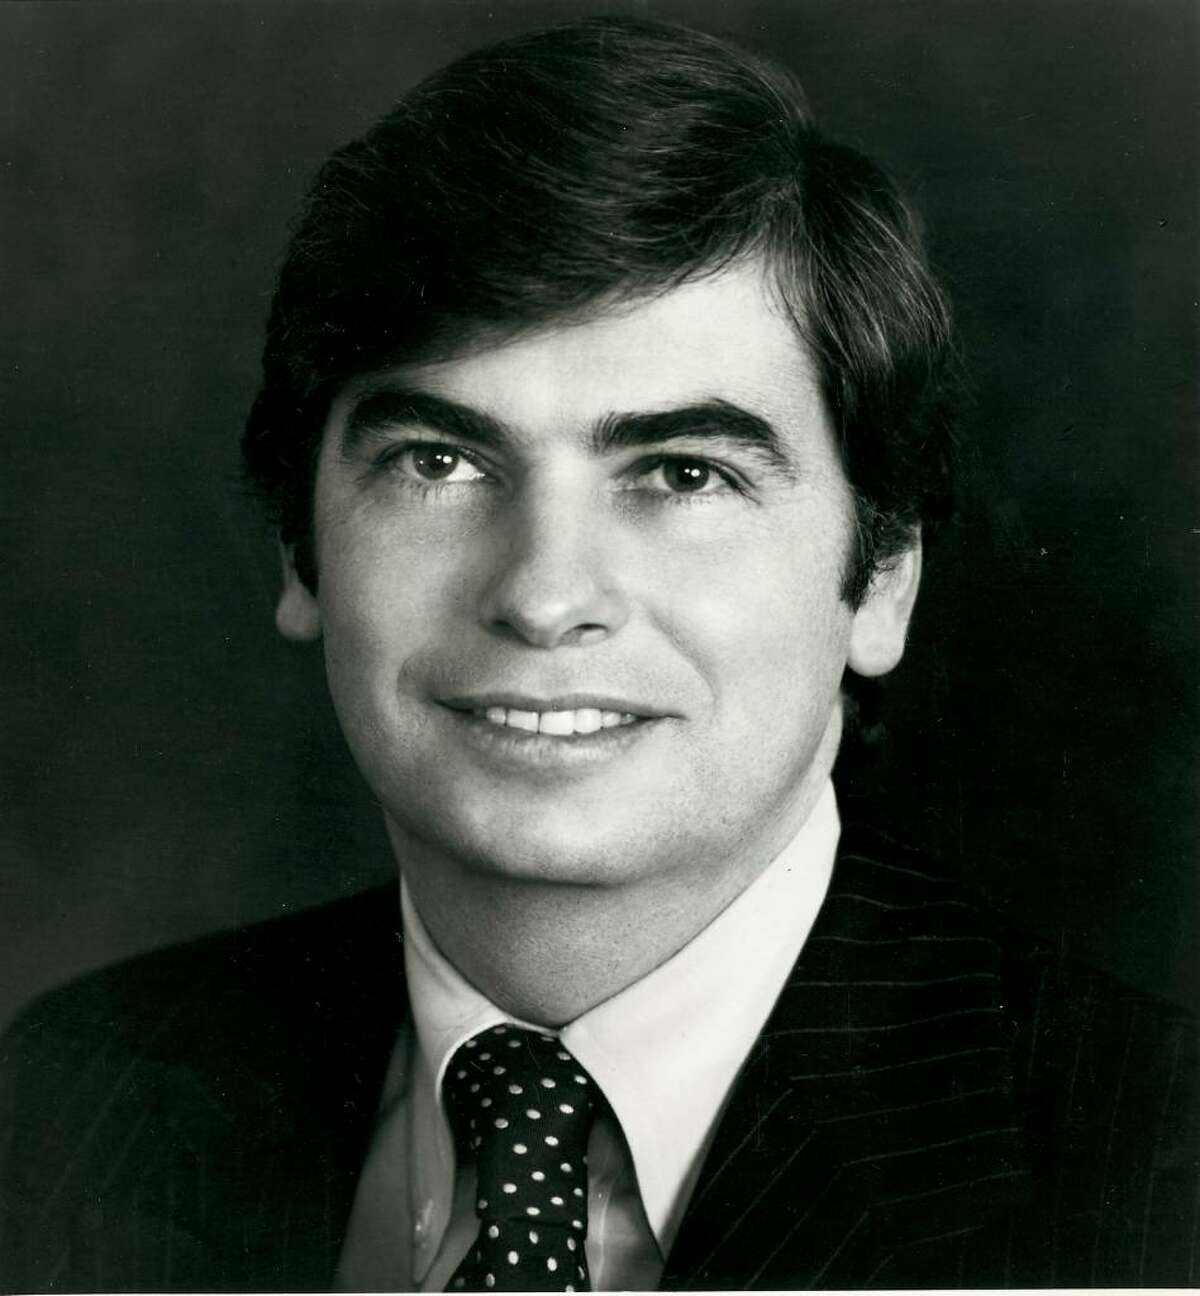 Christopher J. Dodd. Staff file photo, 10/17/76.